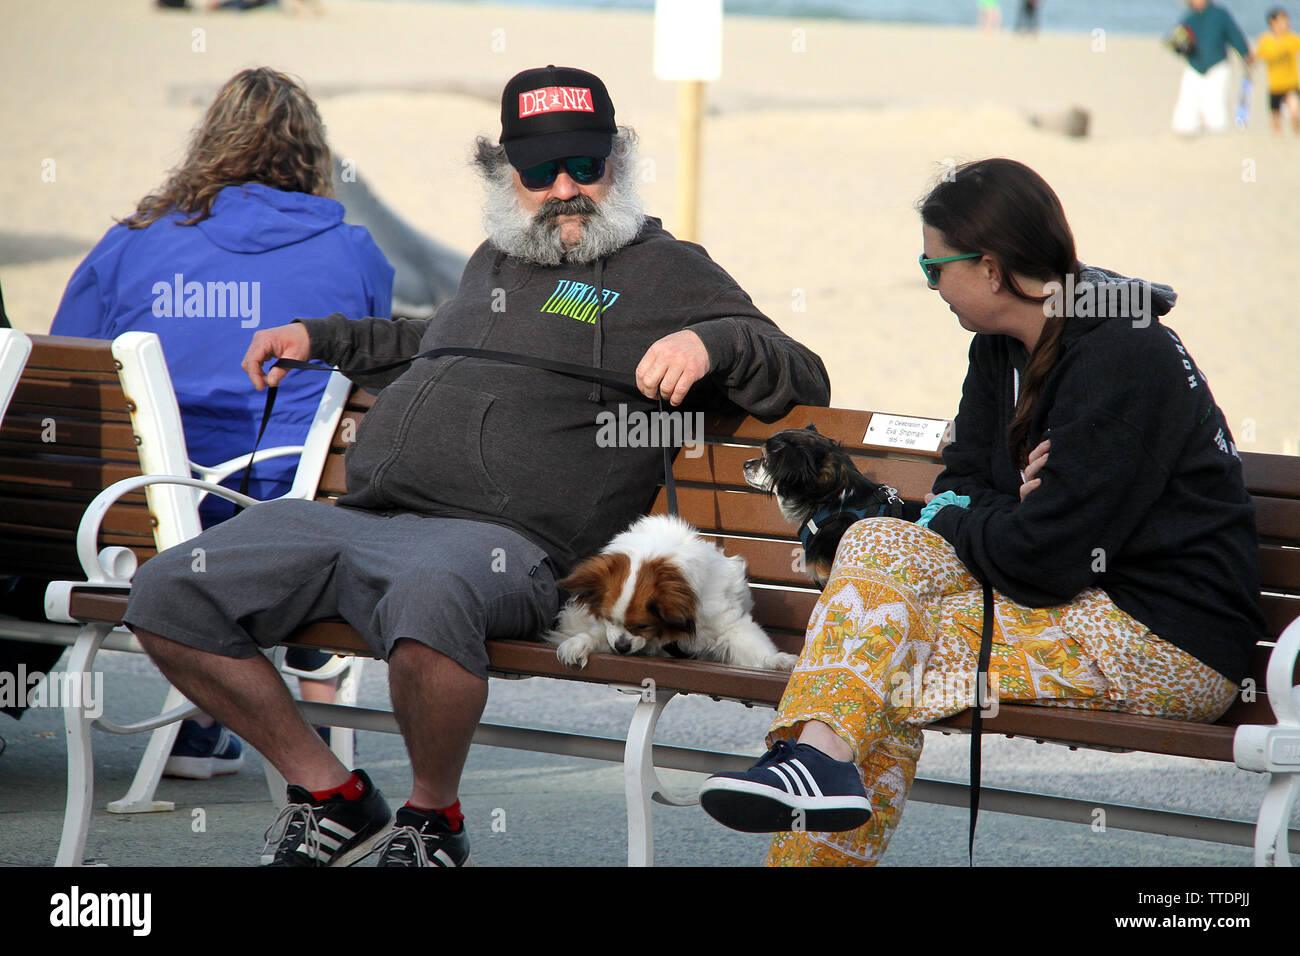 Owners of small dogs sitting on a bench on the boardwalk. Ocean City, MD, USA. - Stock Image